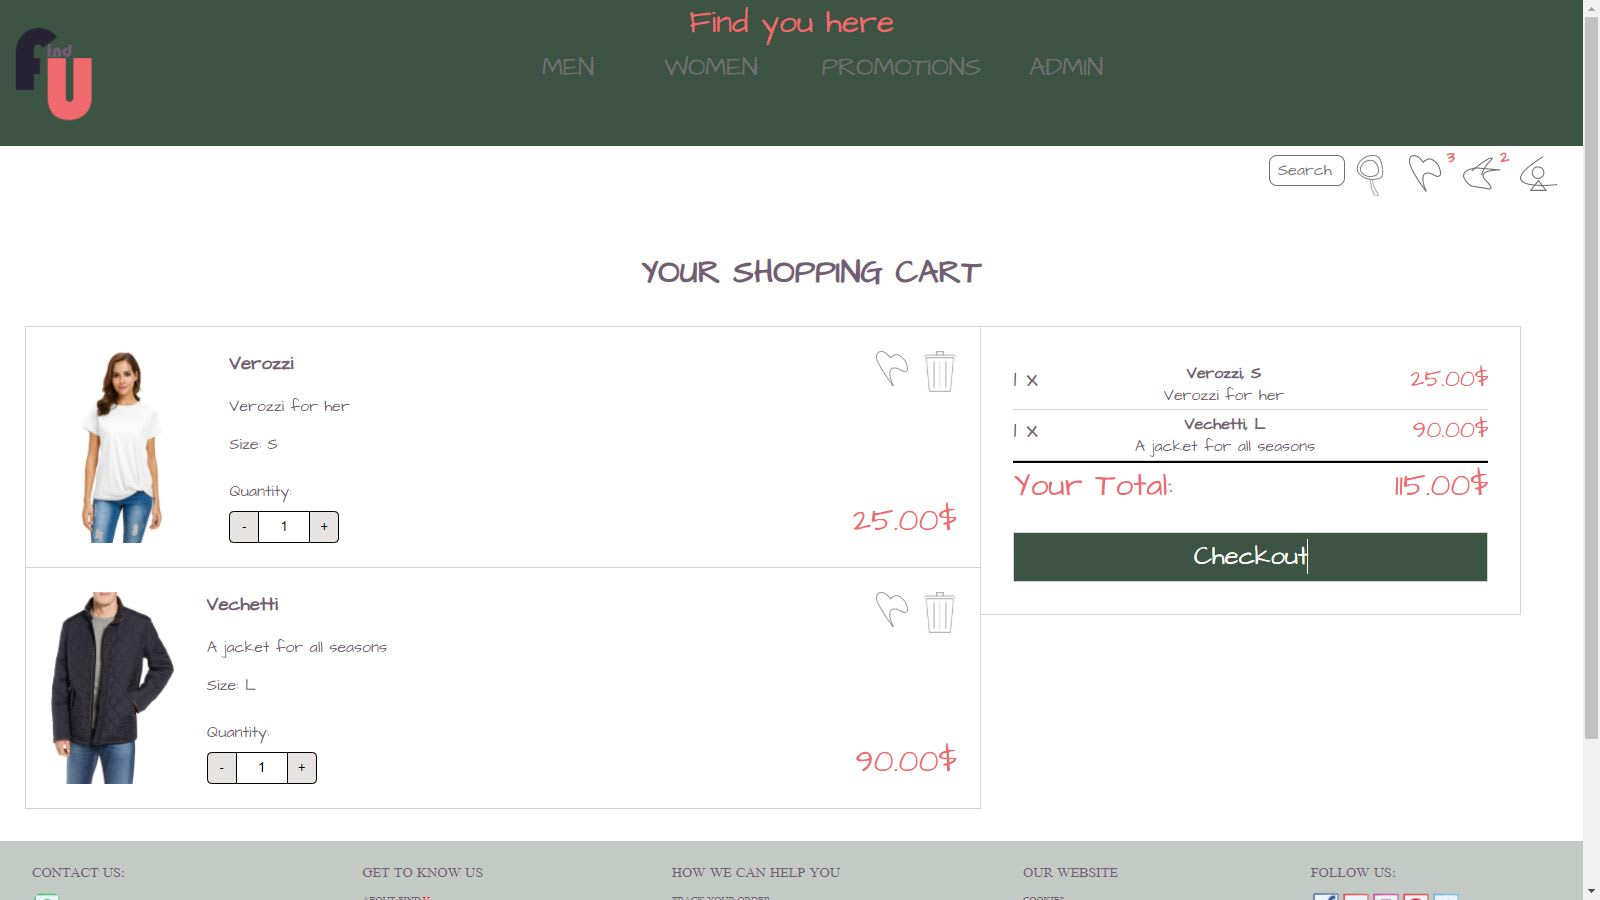 Shopping cart on FindYou template